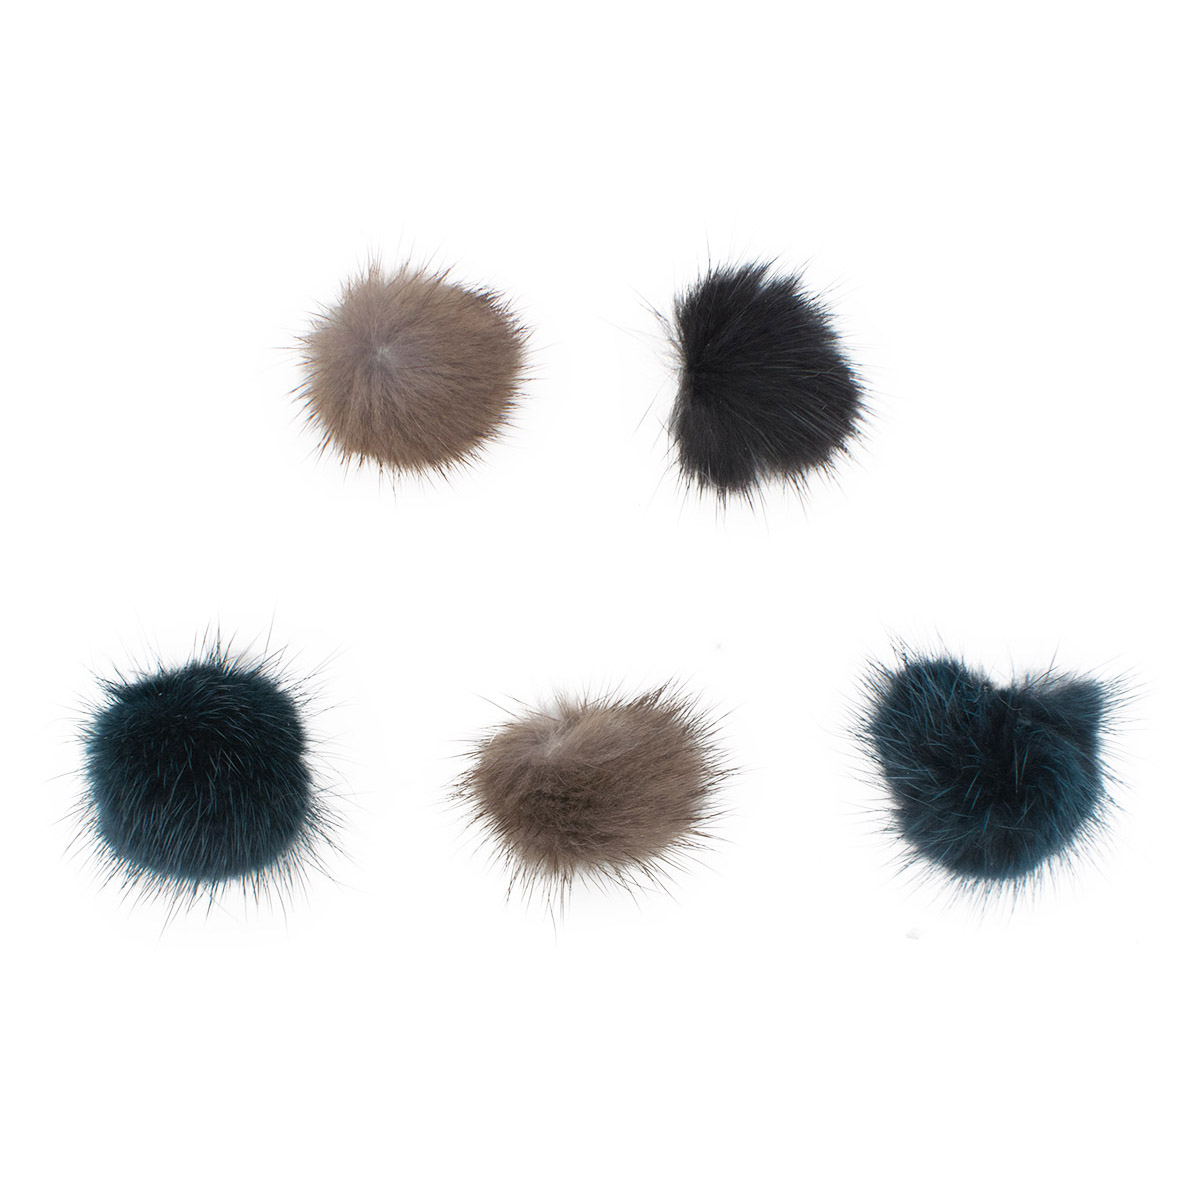 Yk-01041 Set For Creativity Pompon Natural Mink 2 Cm, 5 Pcs/pack